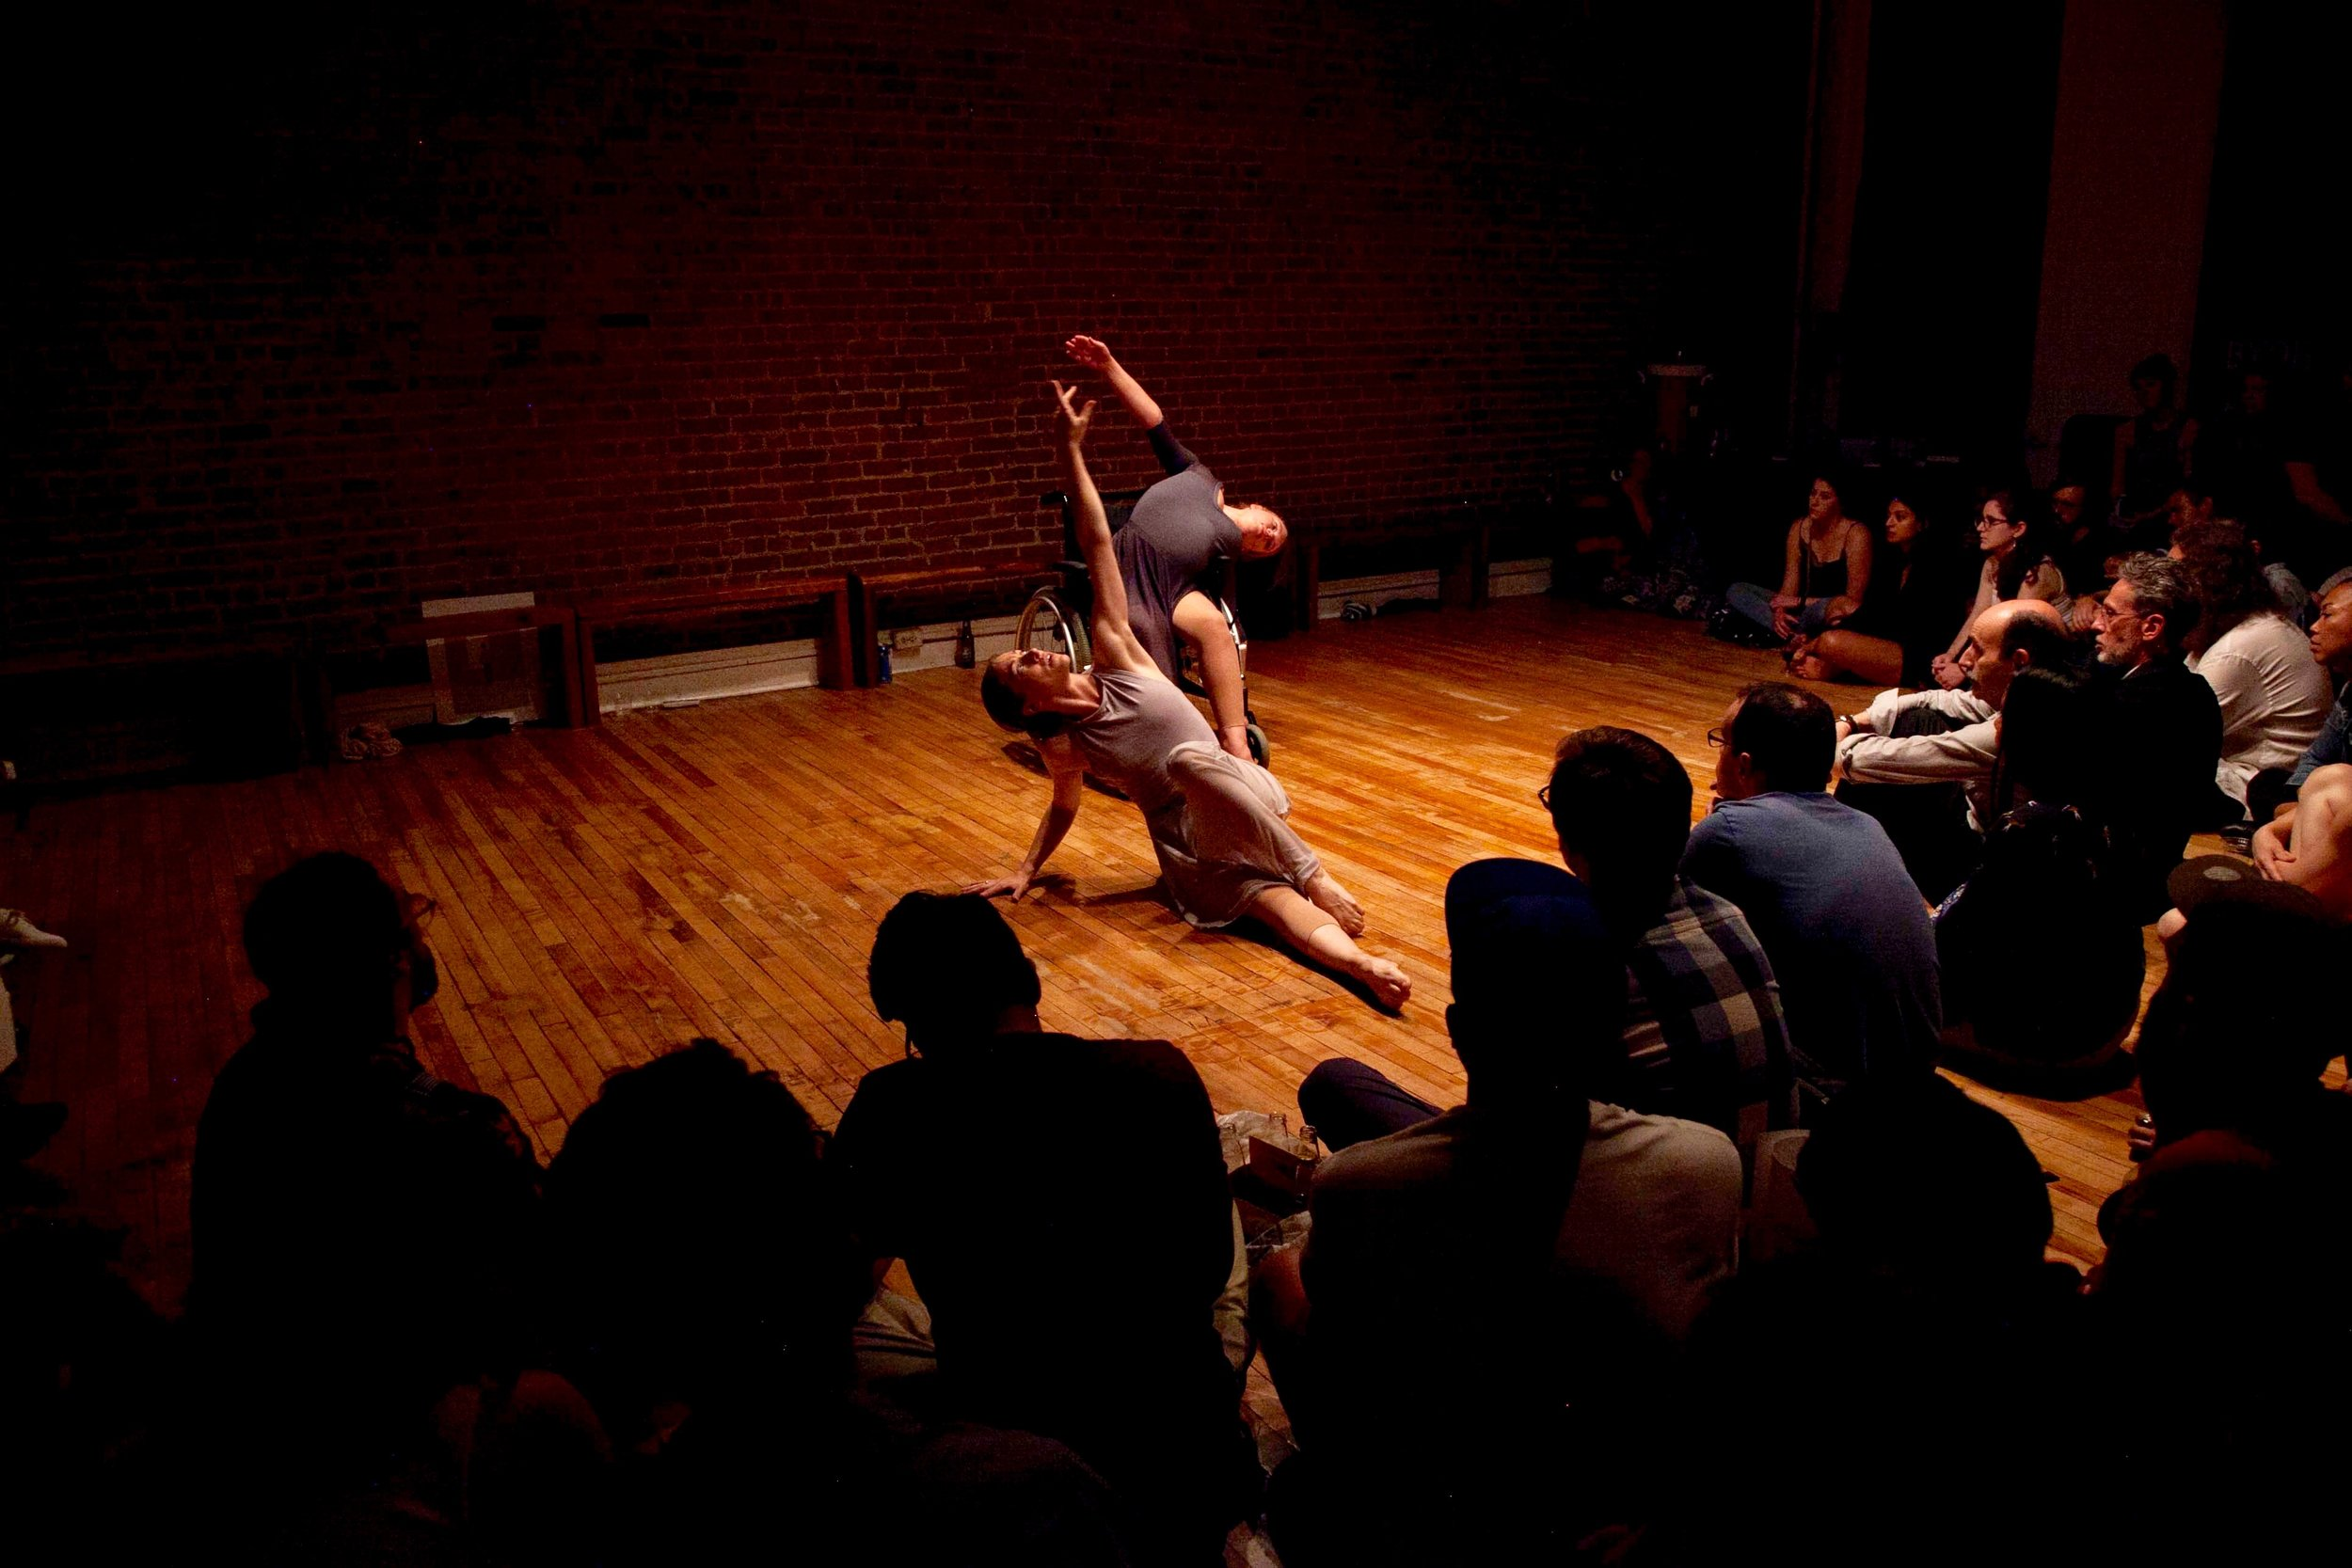 Madeline Charles and Madison Ferris. (Photo: Kyle Netzeband).  (Audience seated on floor around two female dancers in grey dresses reaching up high. One woman is seated on the floor, the other in a wheelchair).